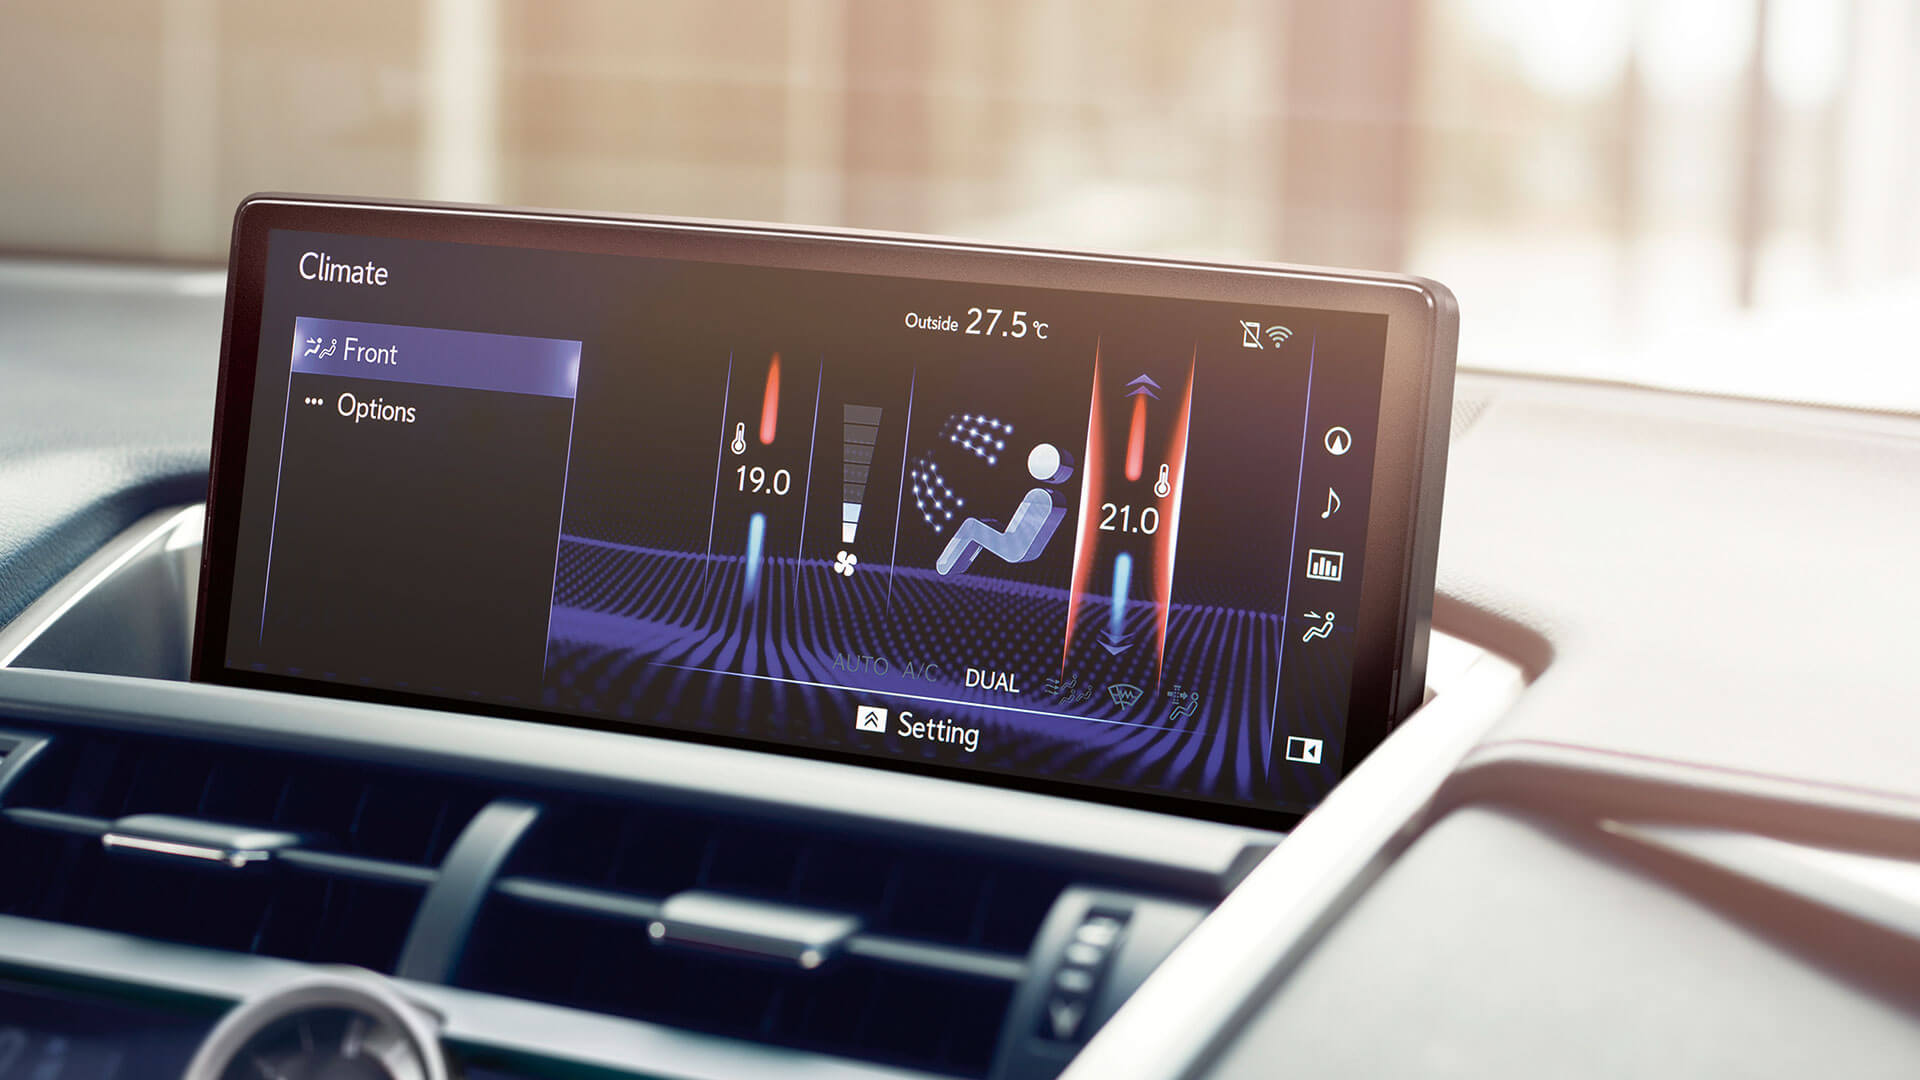 2018 lexus nx my18 features climate control